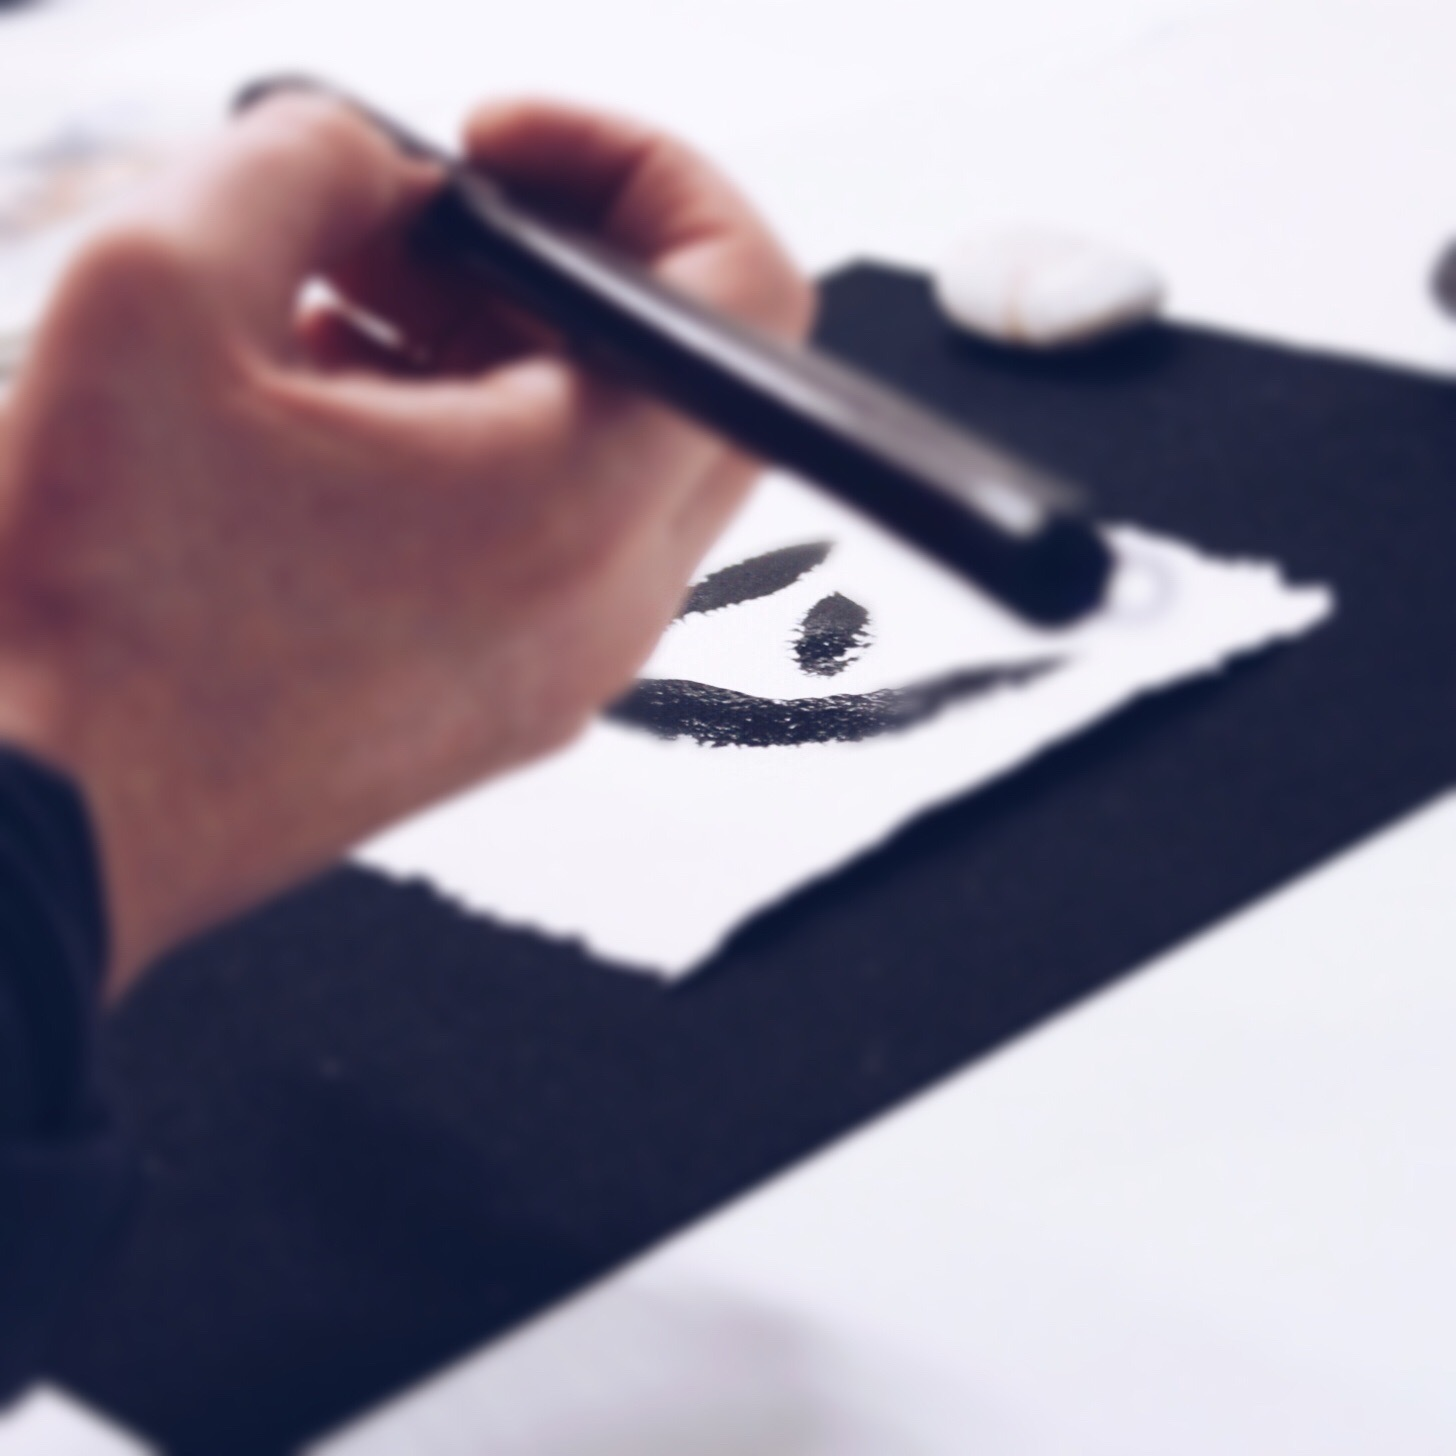 ONLINE Workshop - Art & Spirituality - Japanese Calligraphy as Guided Meditation